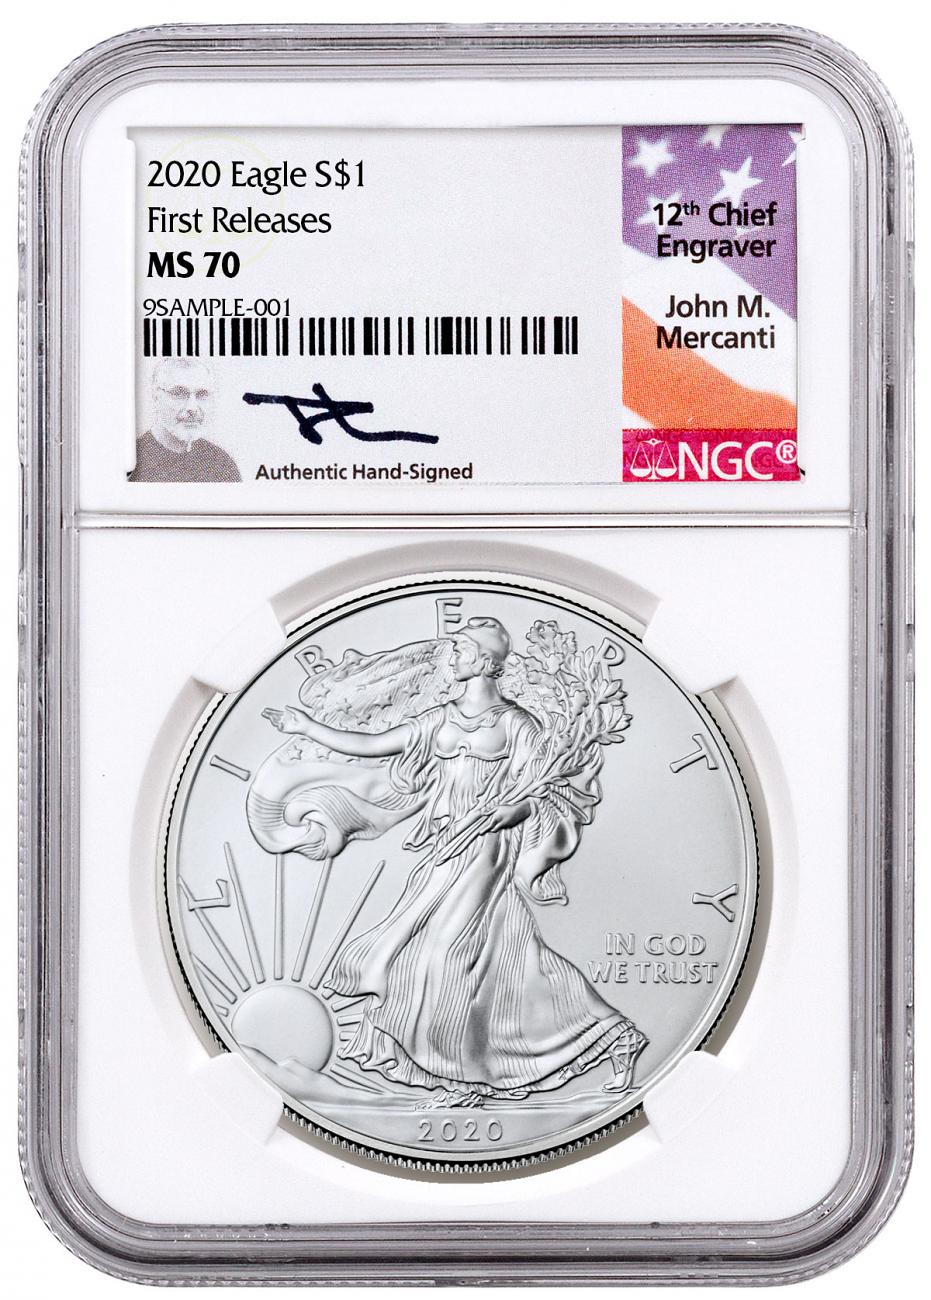 2020 1 oz American Silver Eagle $1 Coin NGC MS70 FR Mercanti Signed Label